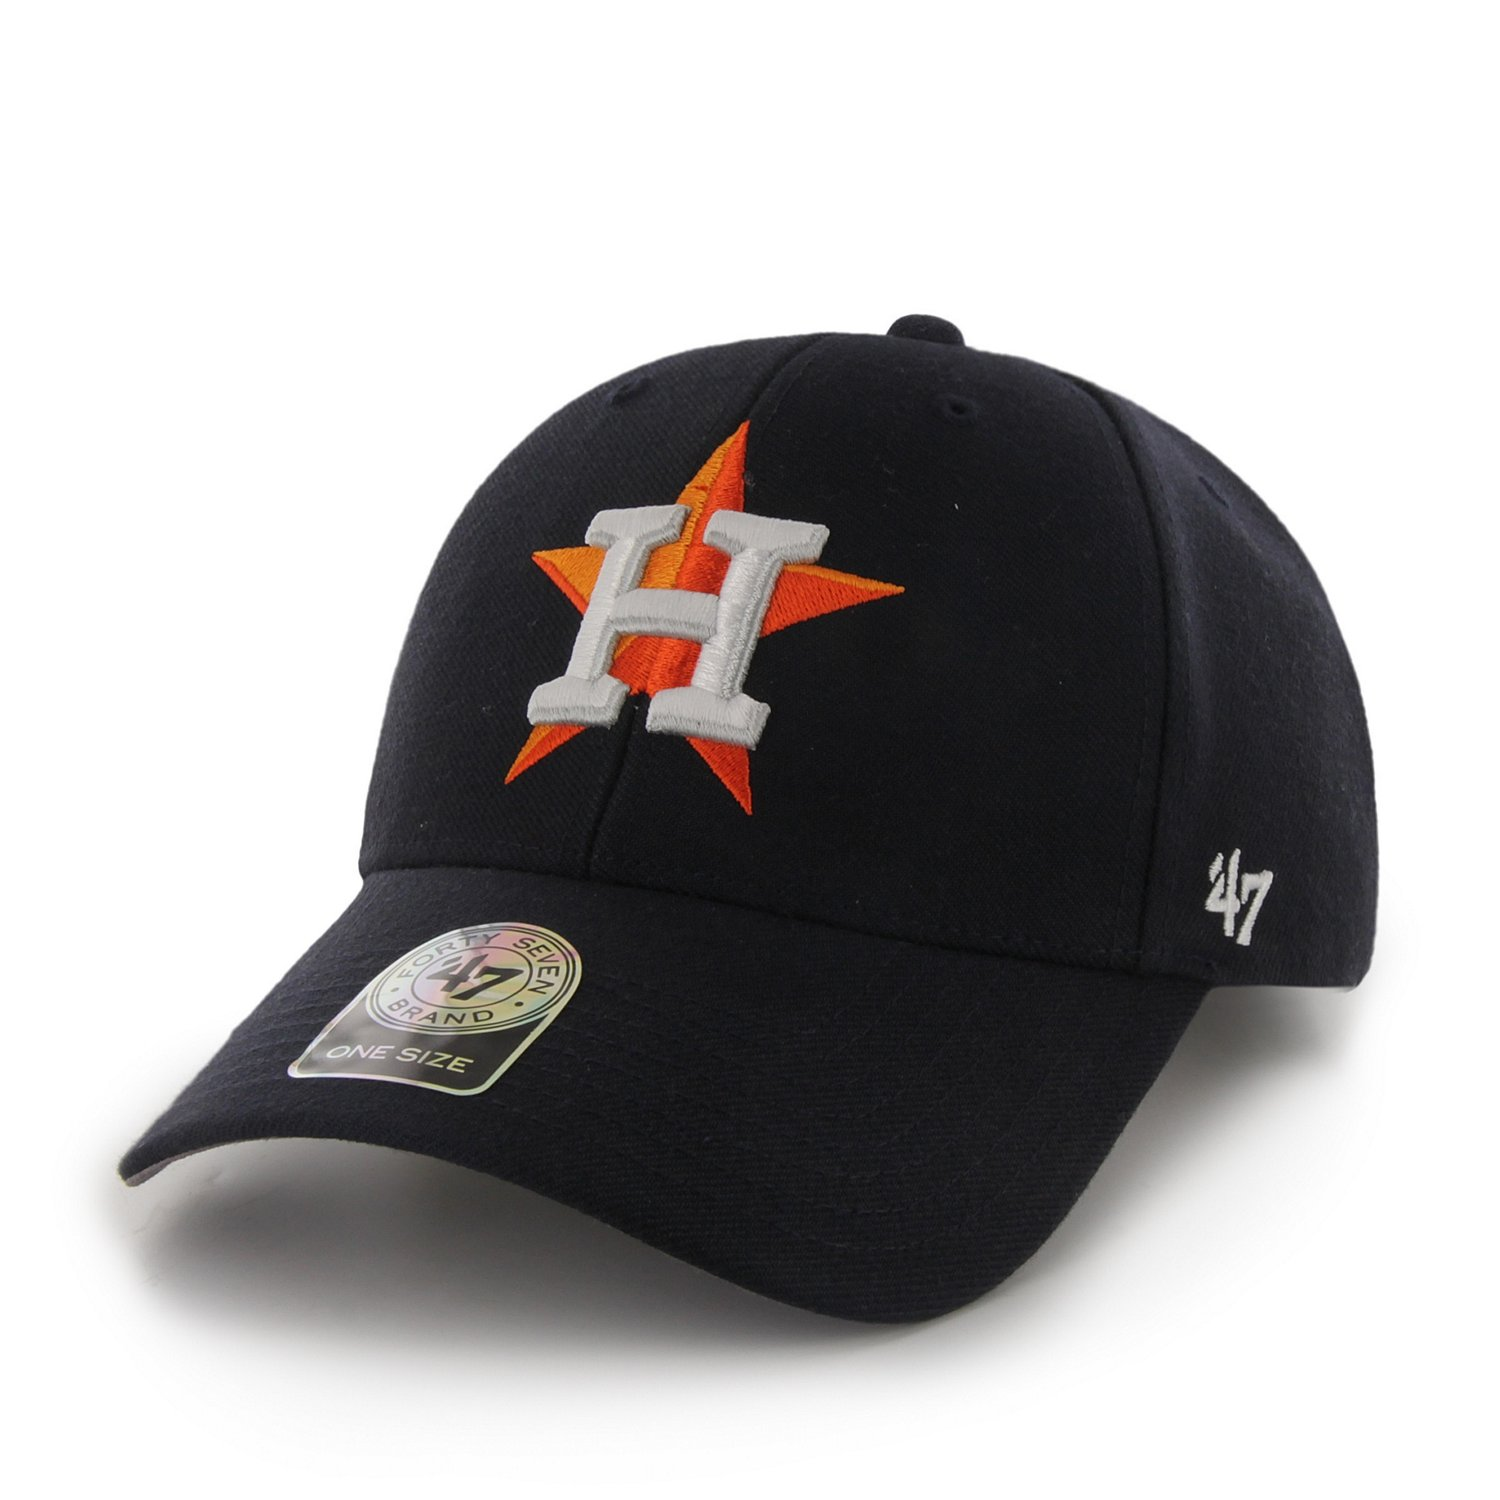 super popular 21f7a 18e82 Display product reviews for  47 Adults  Houston Astros MVP Cap